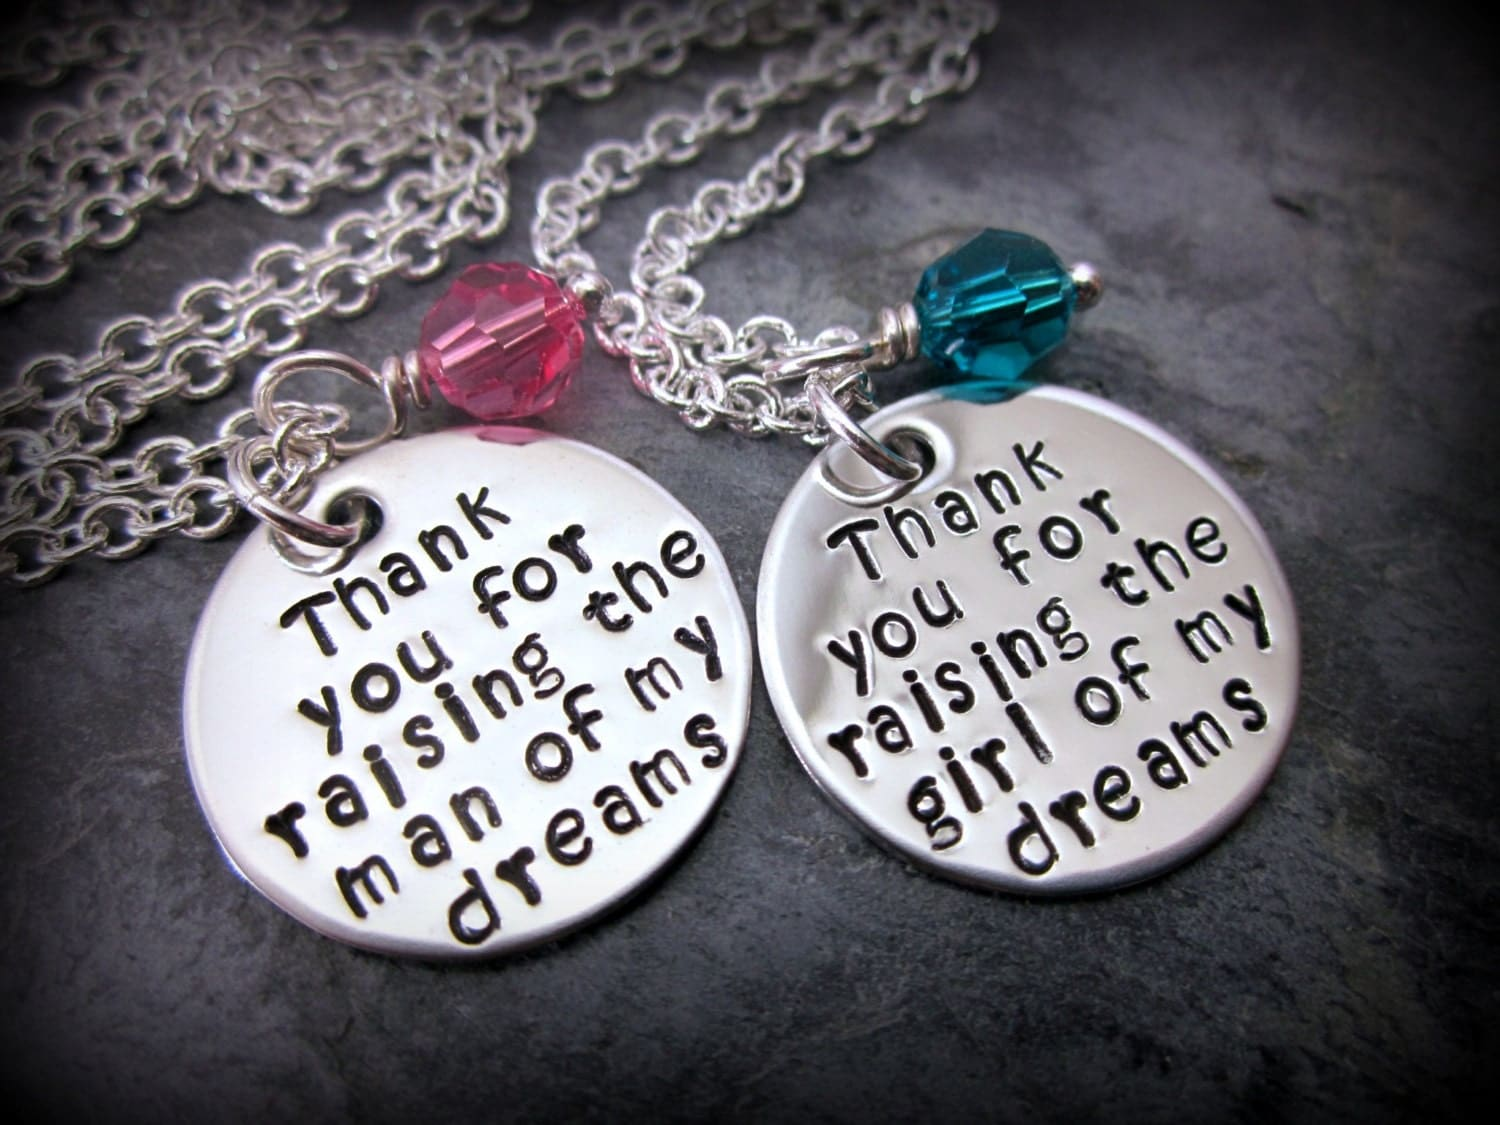 Thank you for raising the man / girl of my dreams SET -  Mothers of the Bride and Groom Necklaces PERSONALIZED